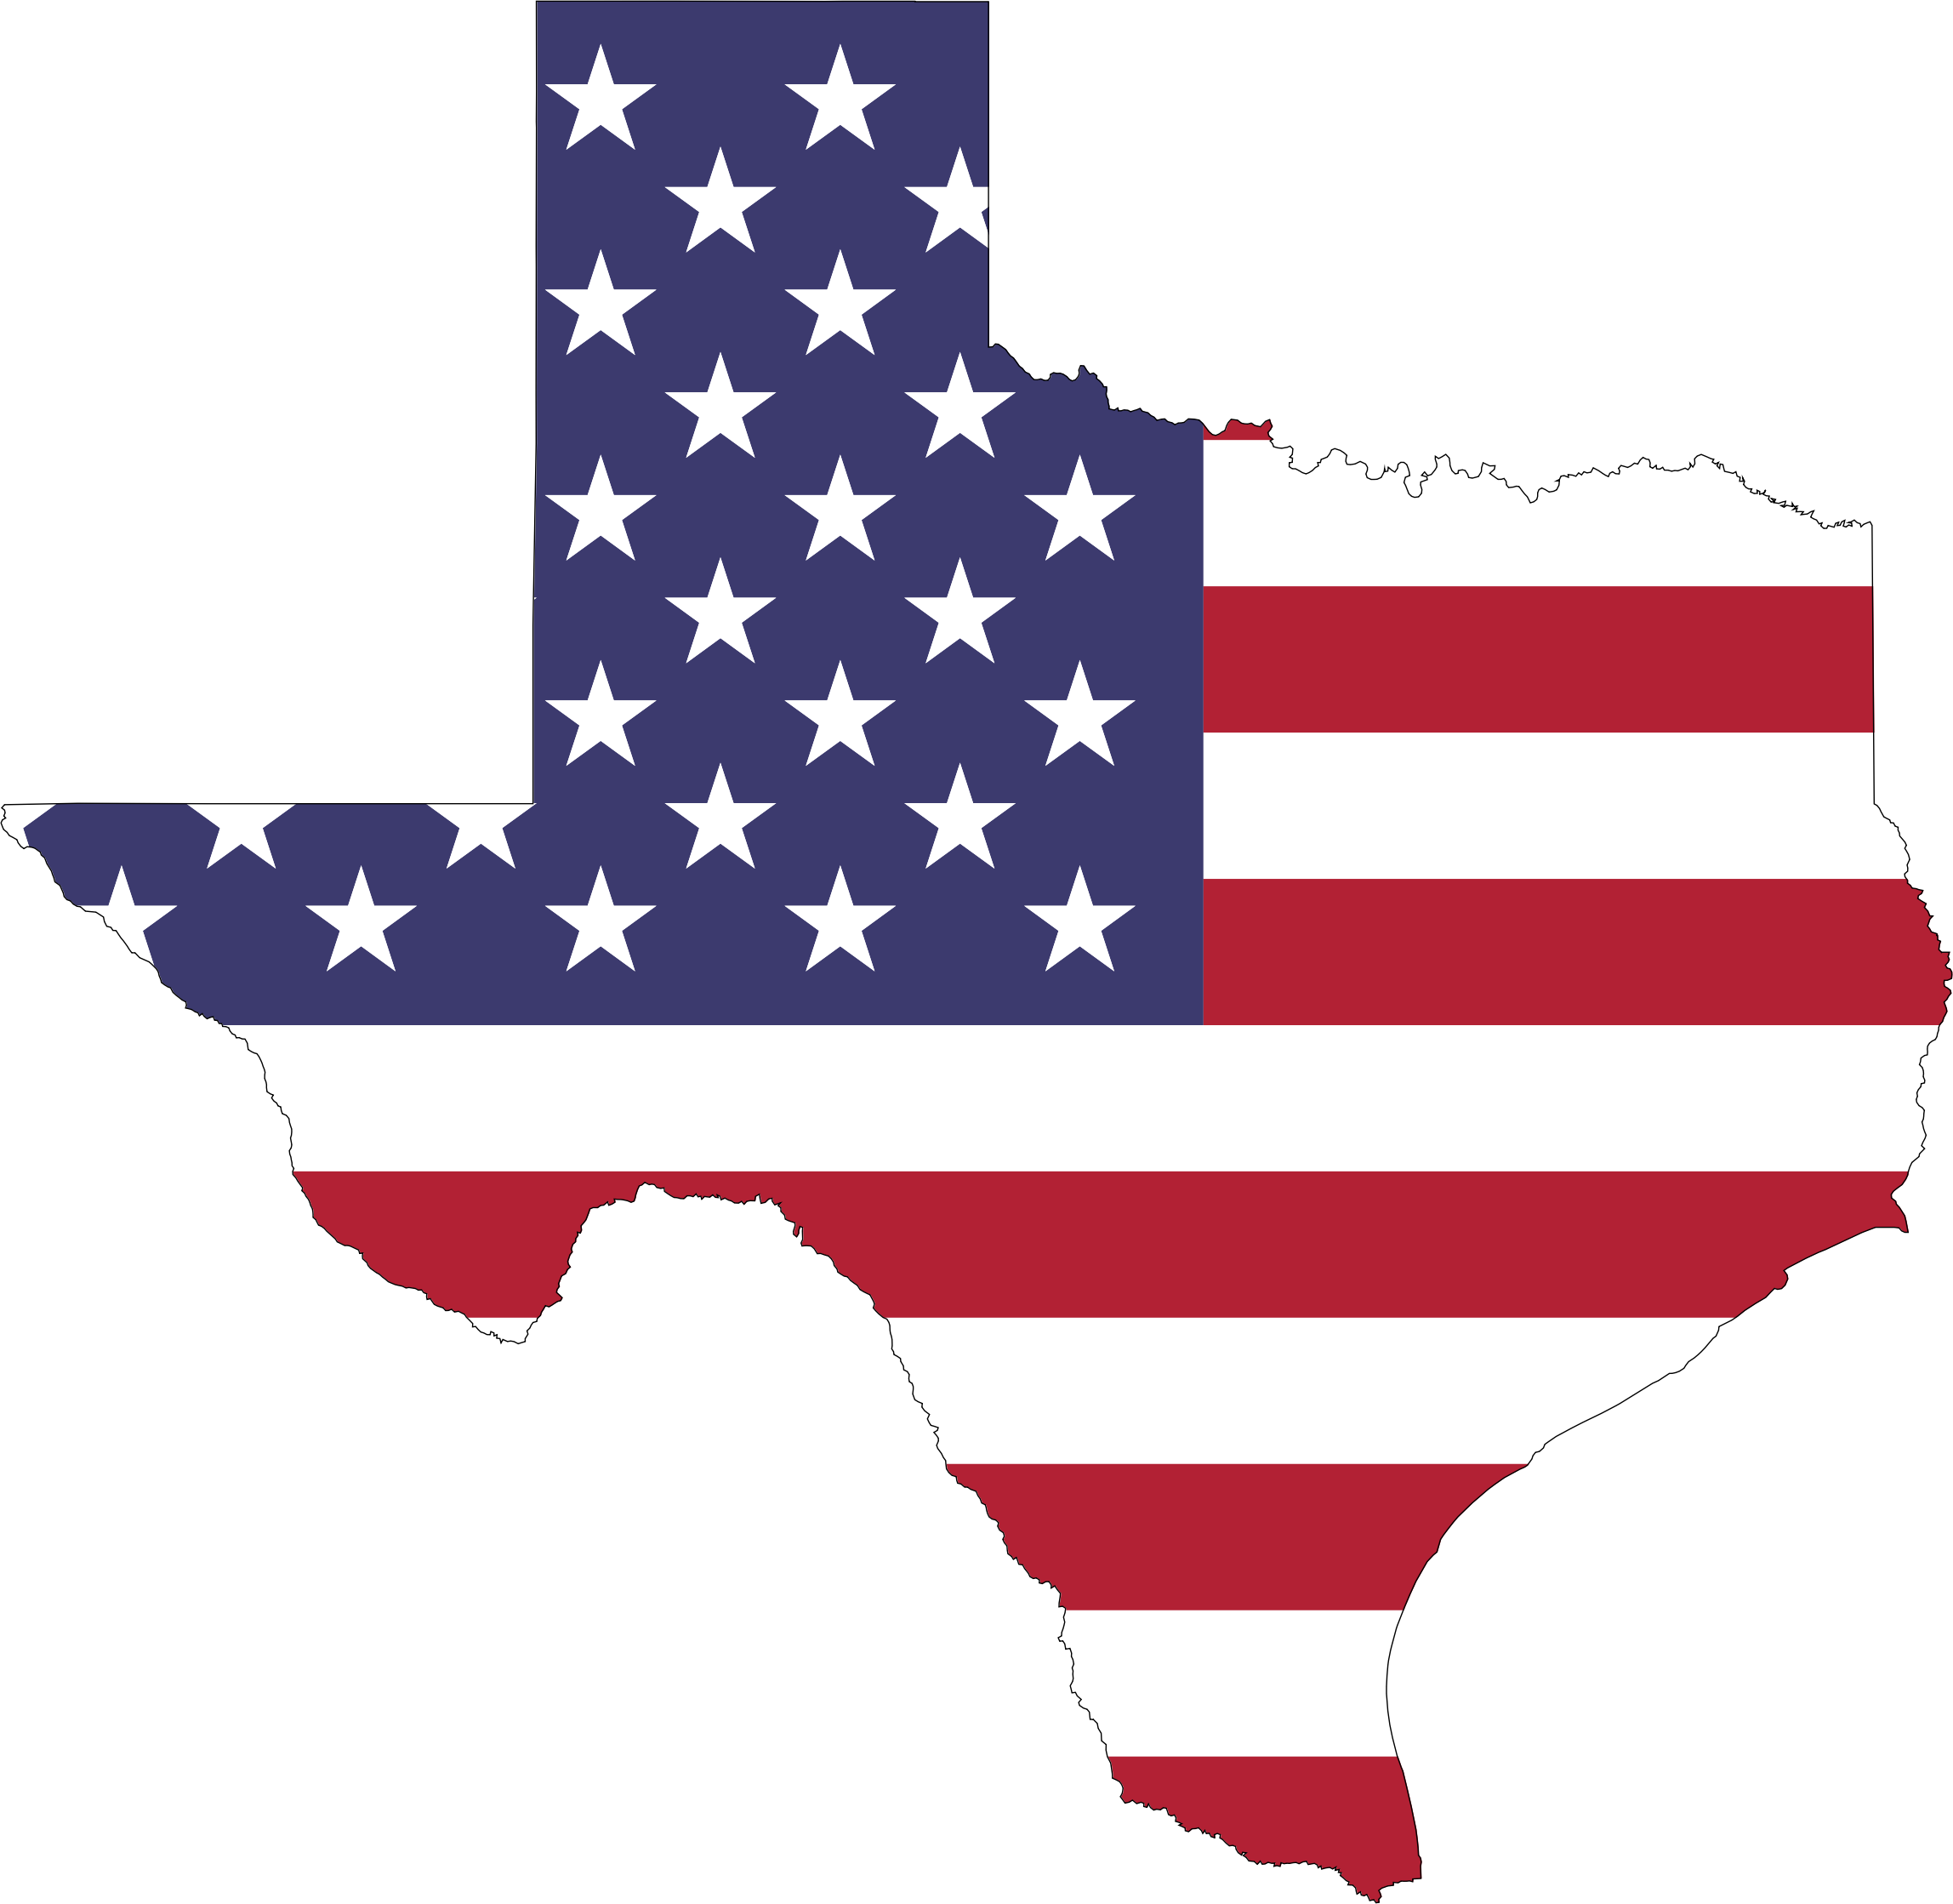 Texas clipart png. American flag map icons